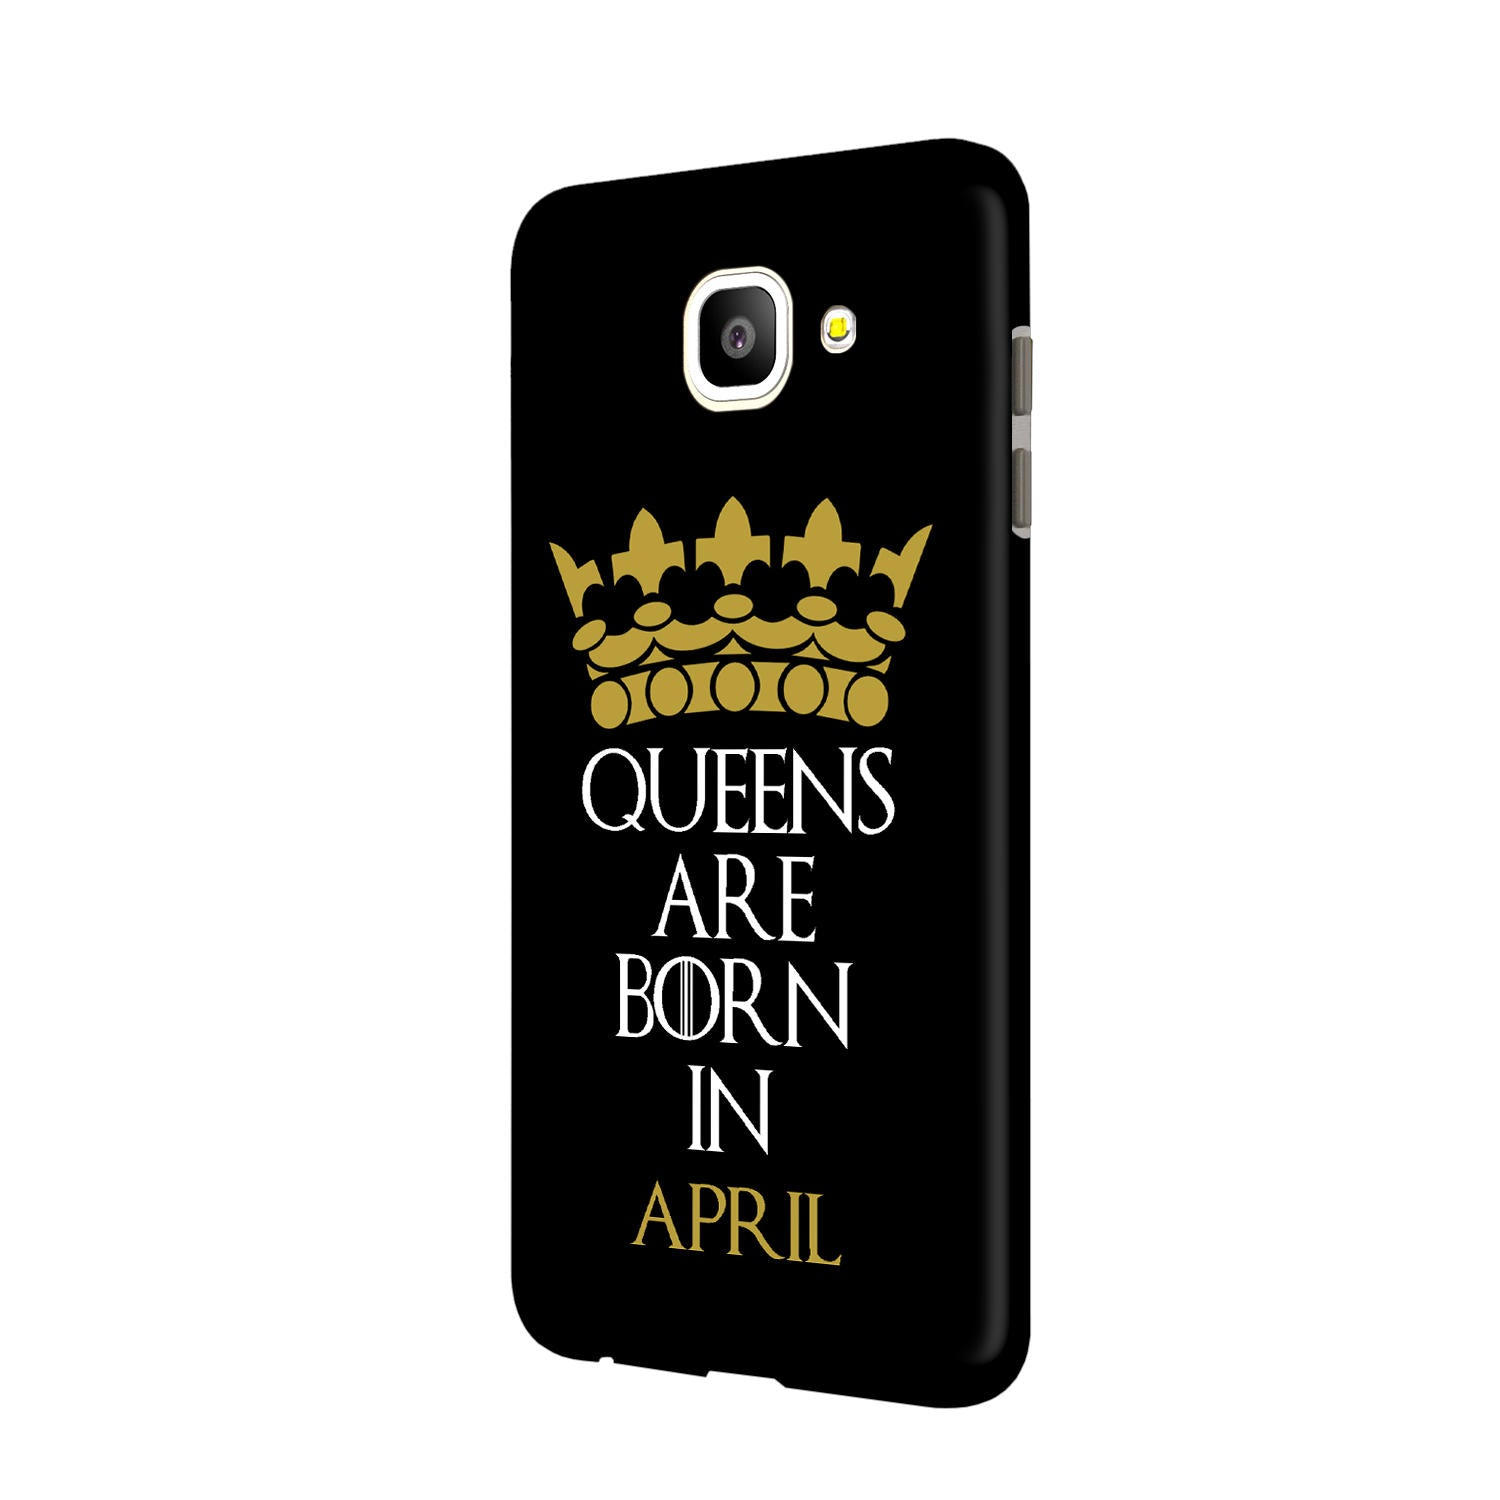 Queens April Samsung Galaxy J7 Max Mobile Cover Case